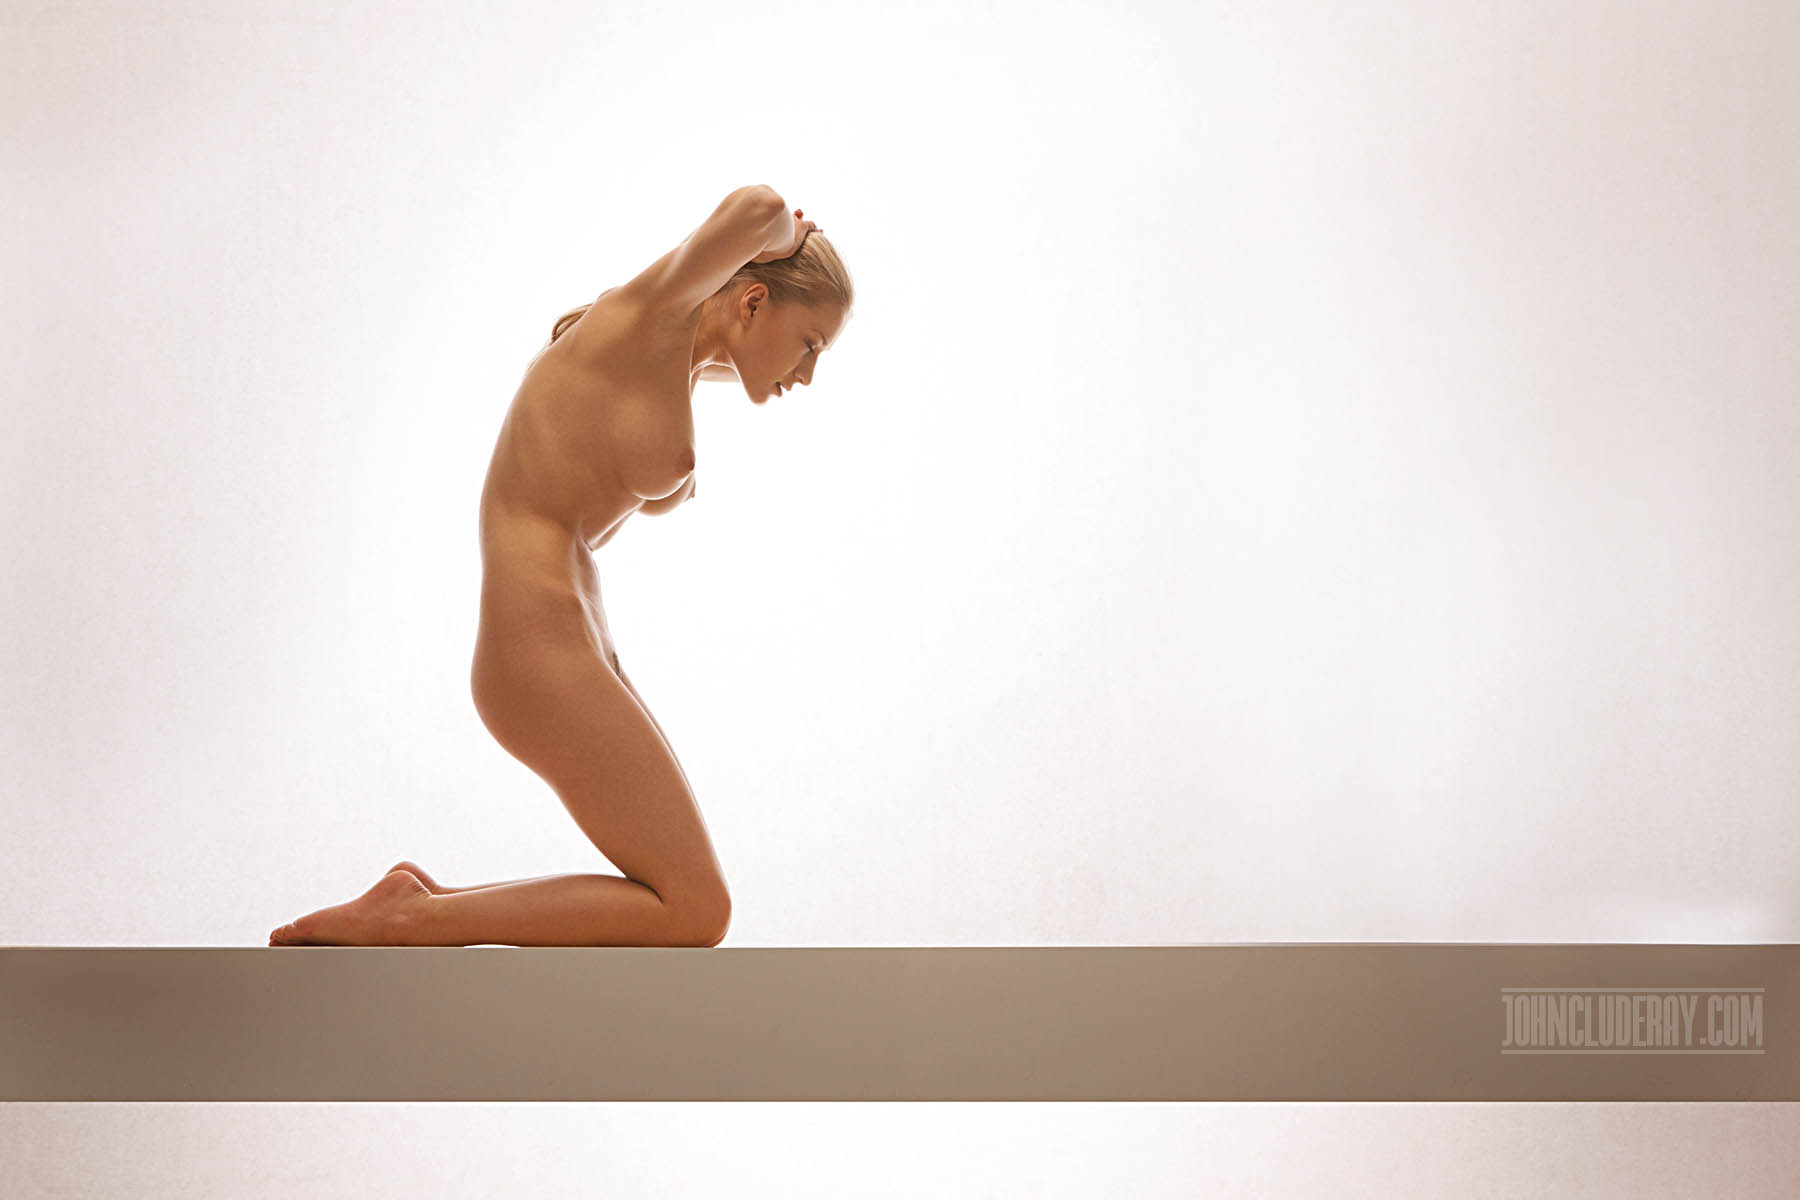 John Cluderay on Art Nude Today